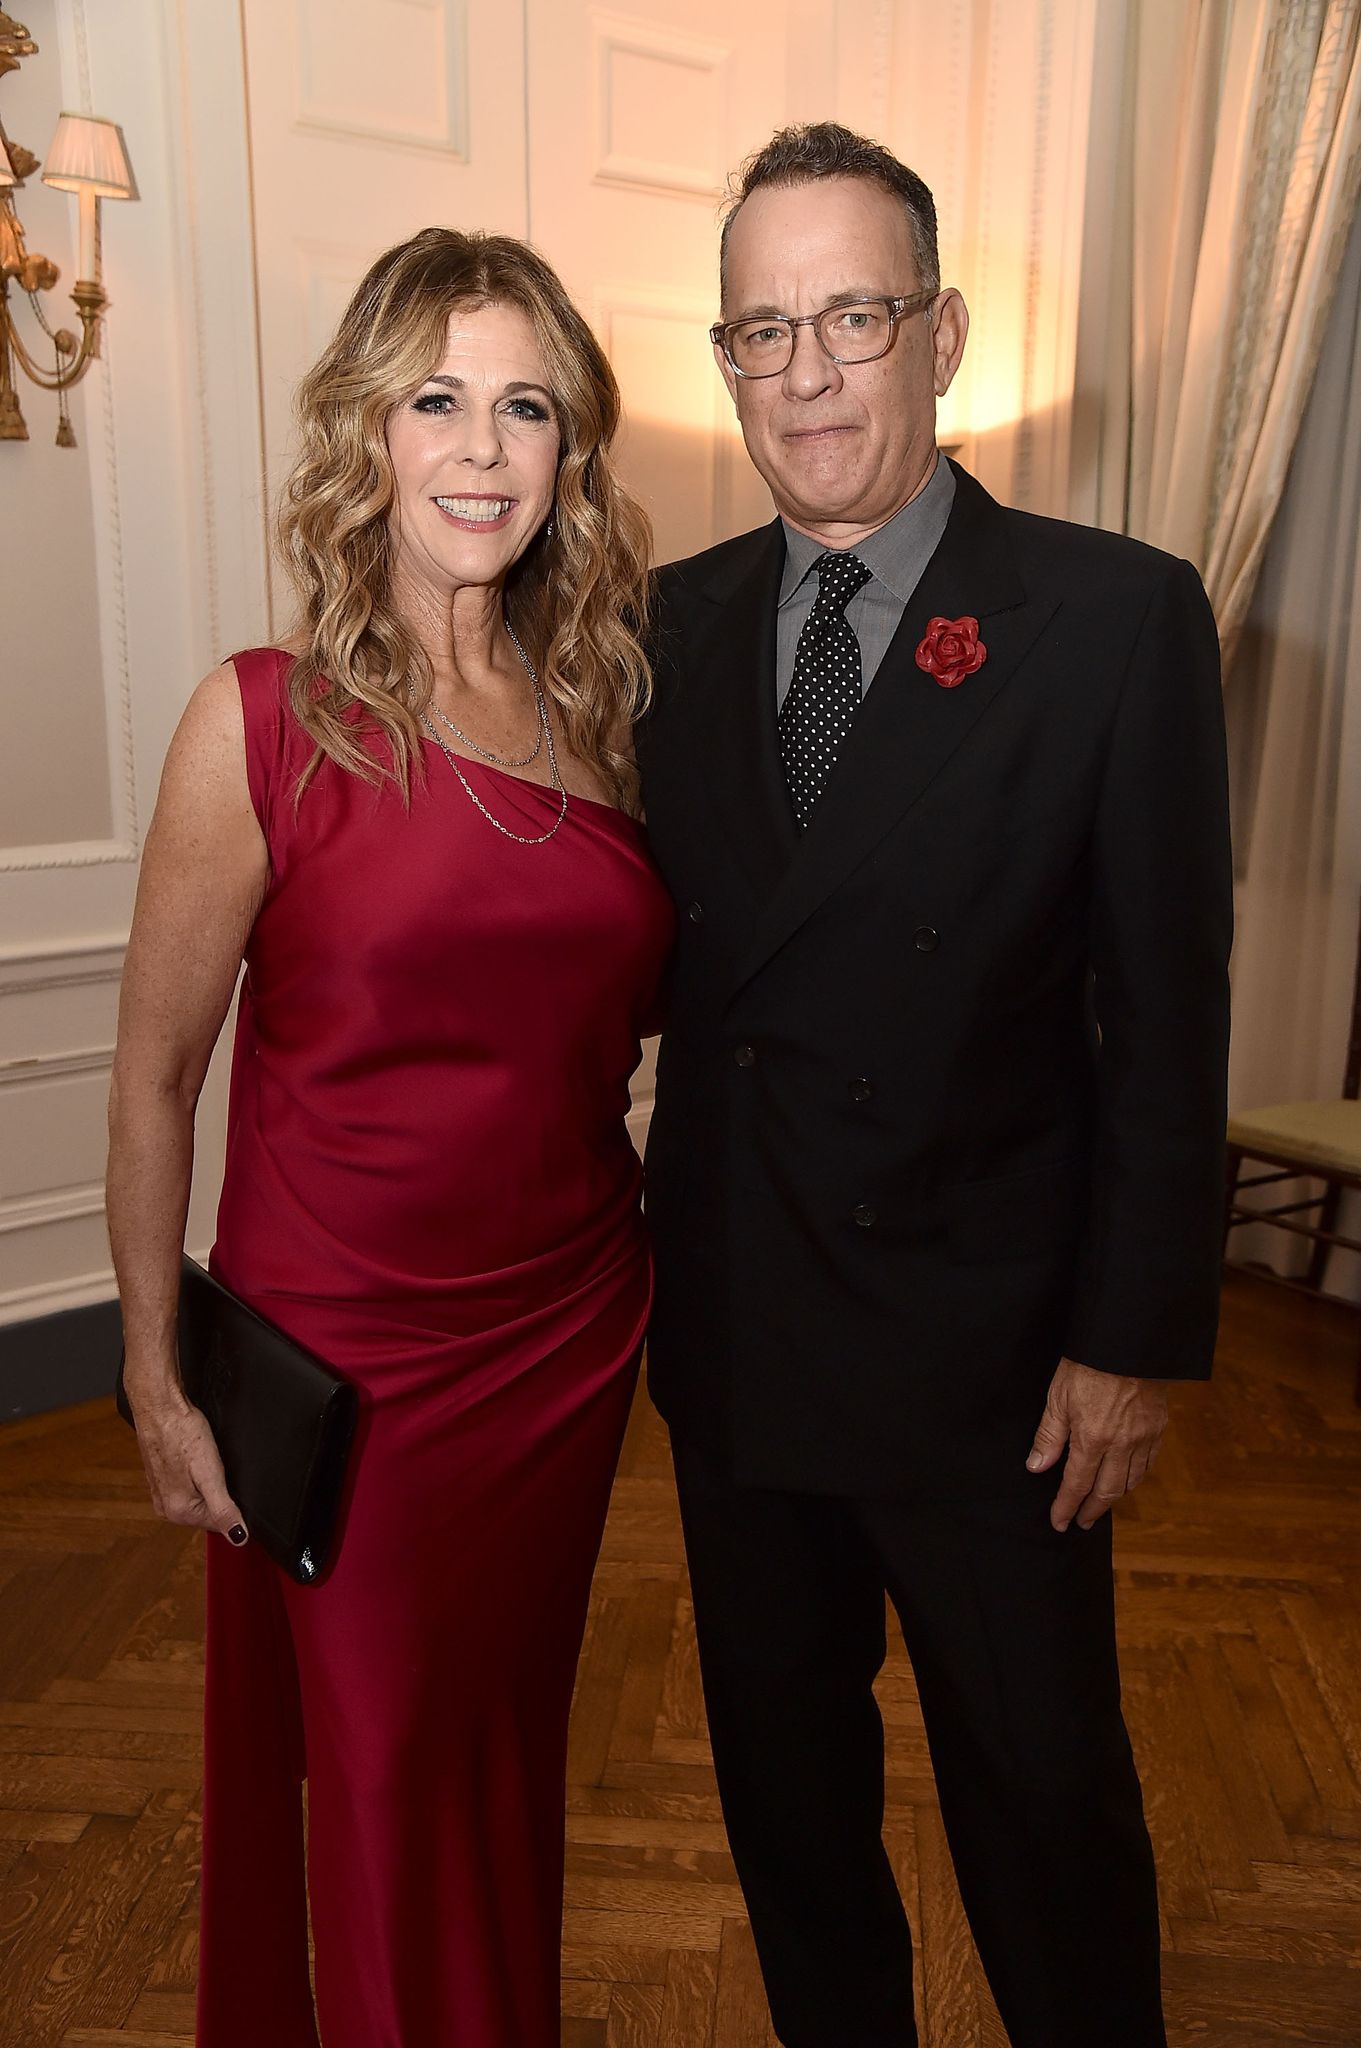 Rita Wilson and Tom Hanks attend the 2018 American Friends of Blerancourt Dinner at Colony Club on November 9, 2018 | Photo: Getty Images